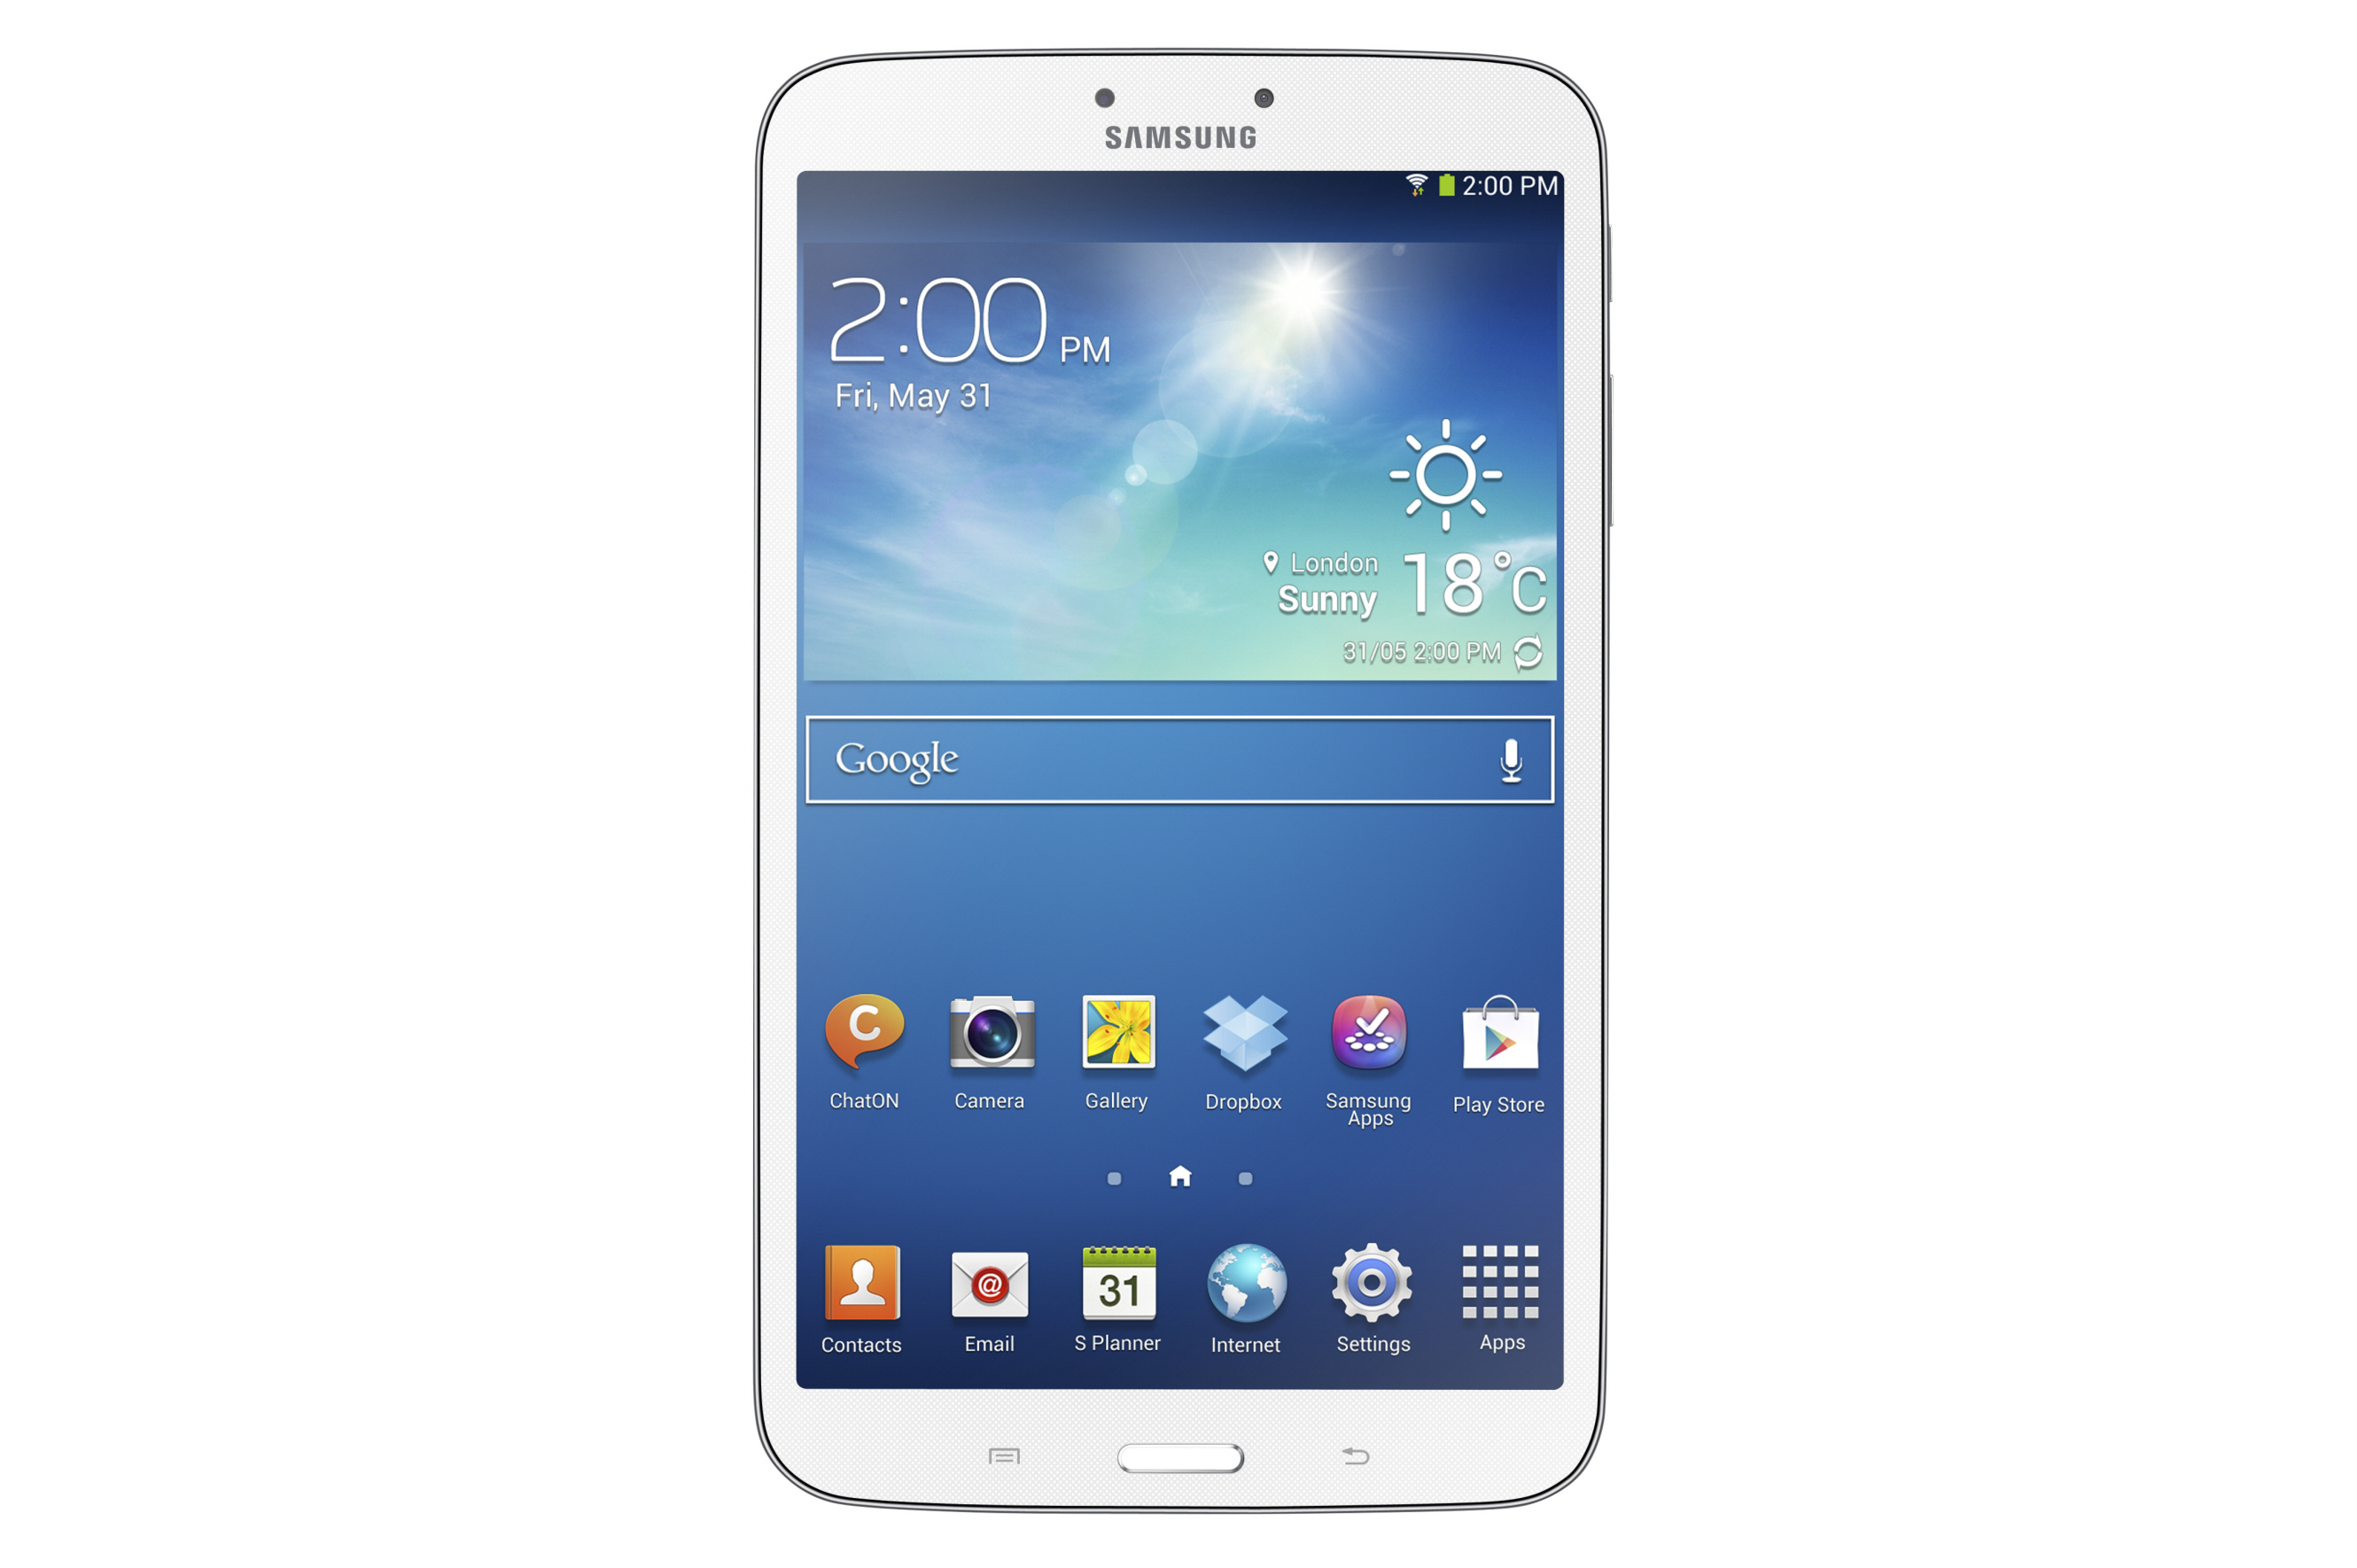 Samsung introduces new Galaxy Tab 3 Series